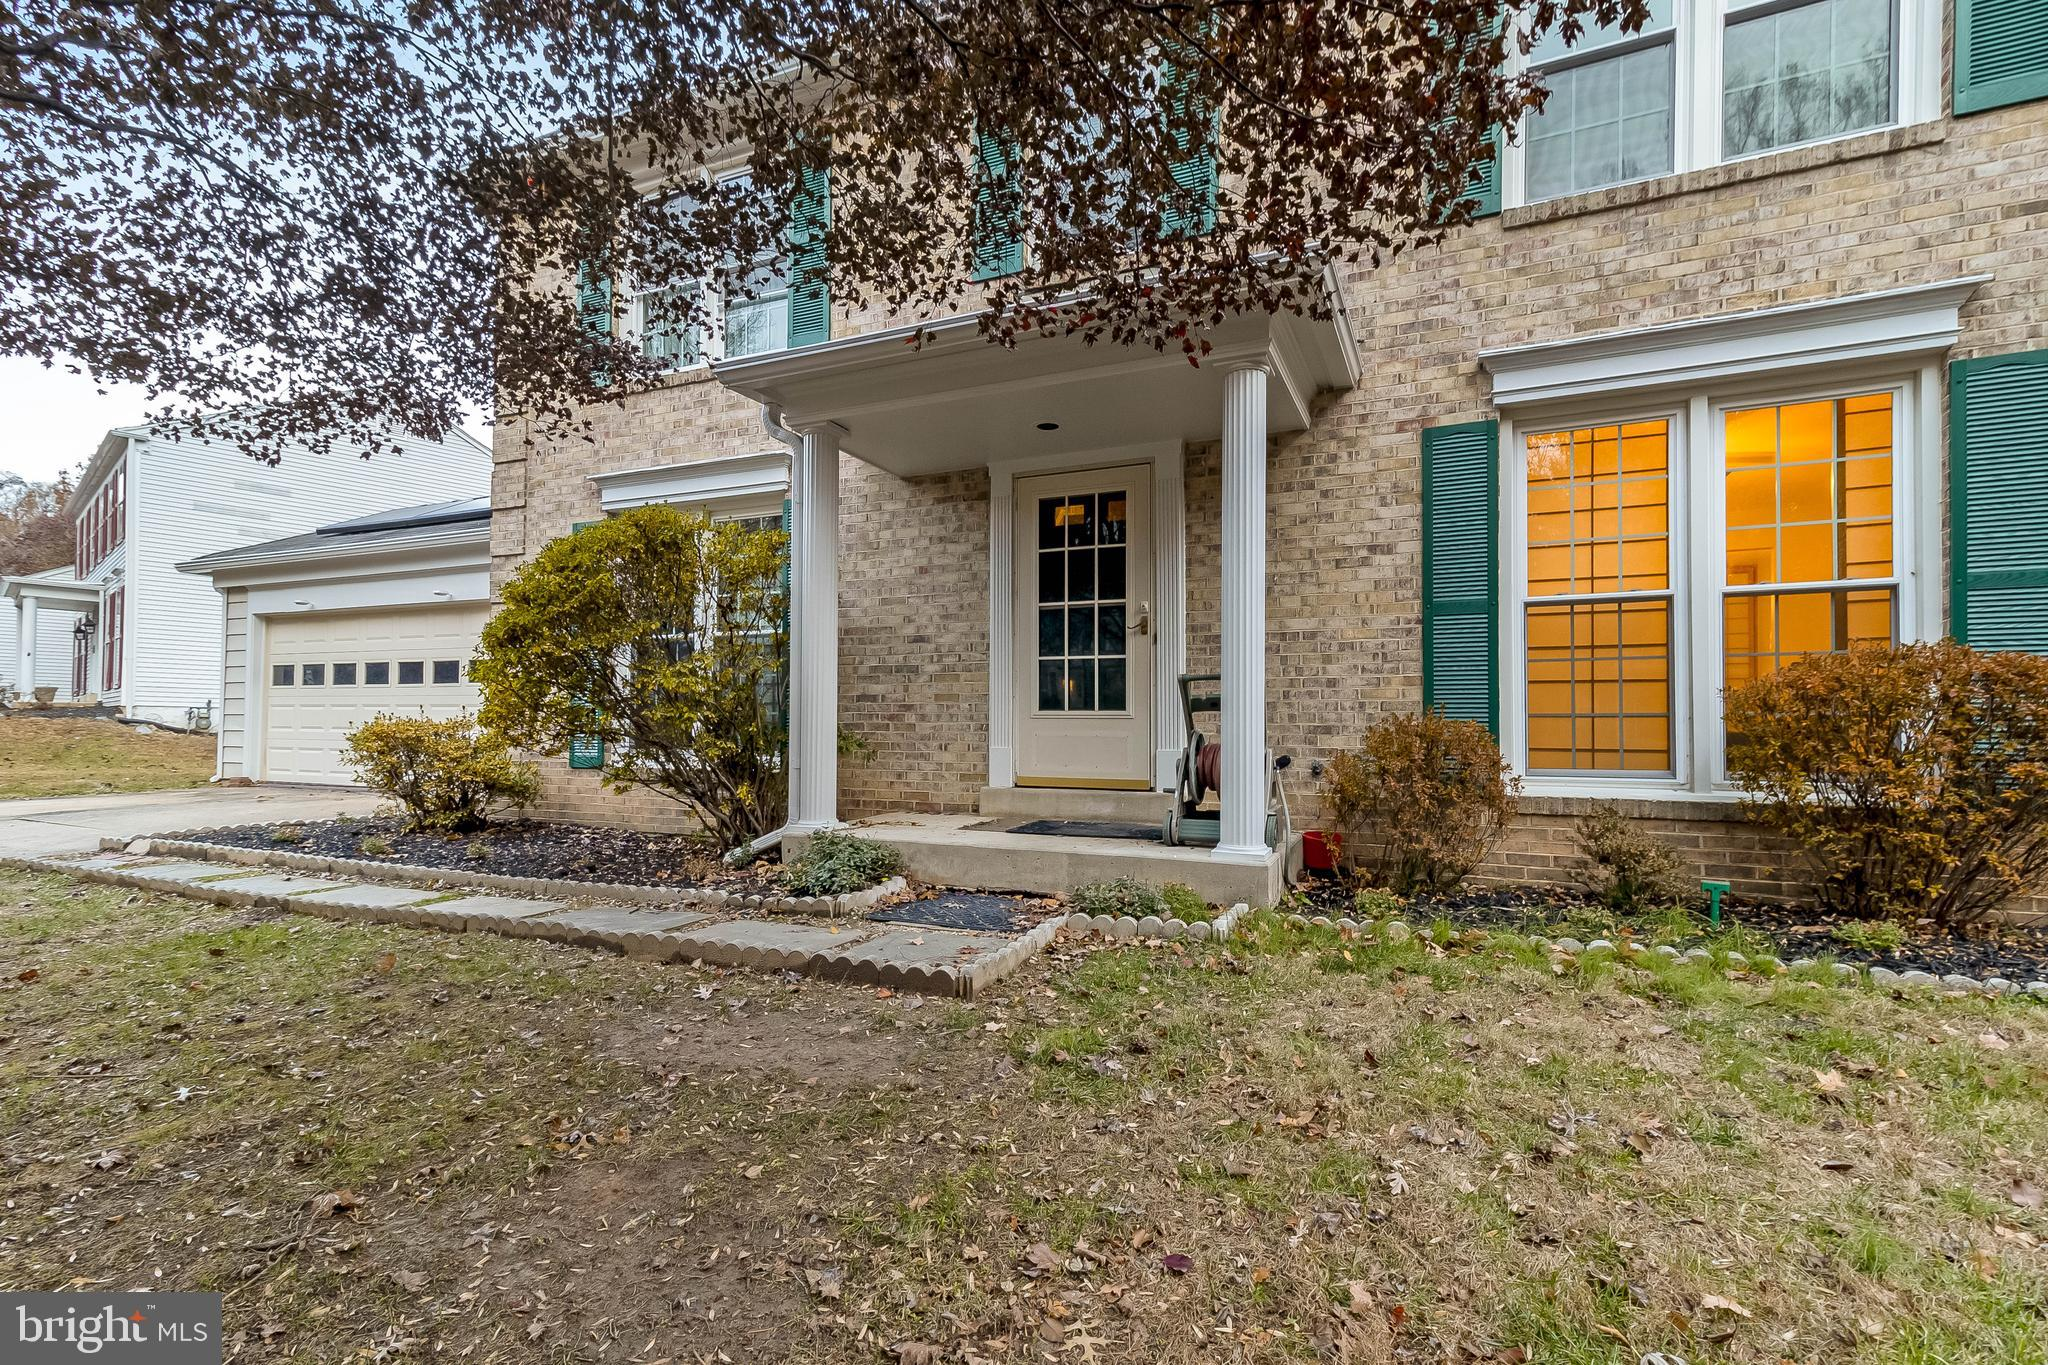 13105 SERPENTINE WAY, SILVER SPRING, MD 20904